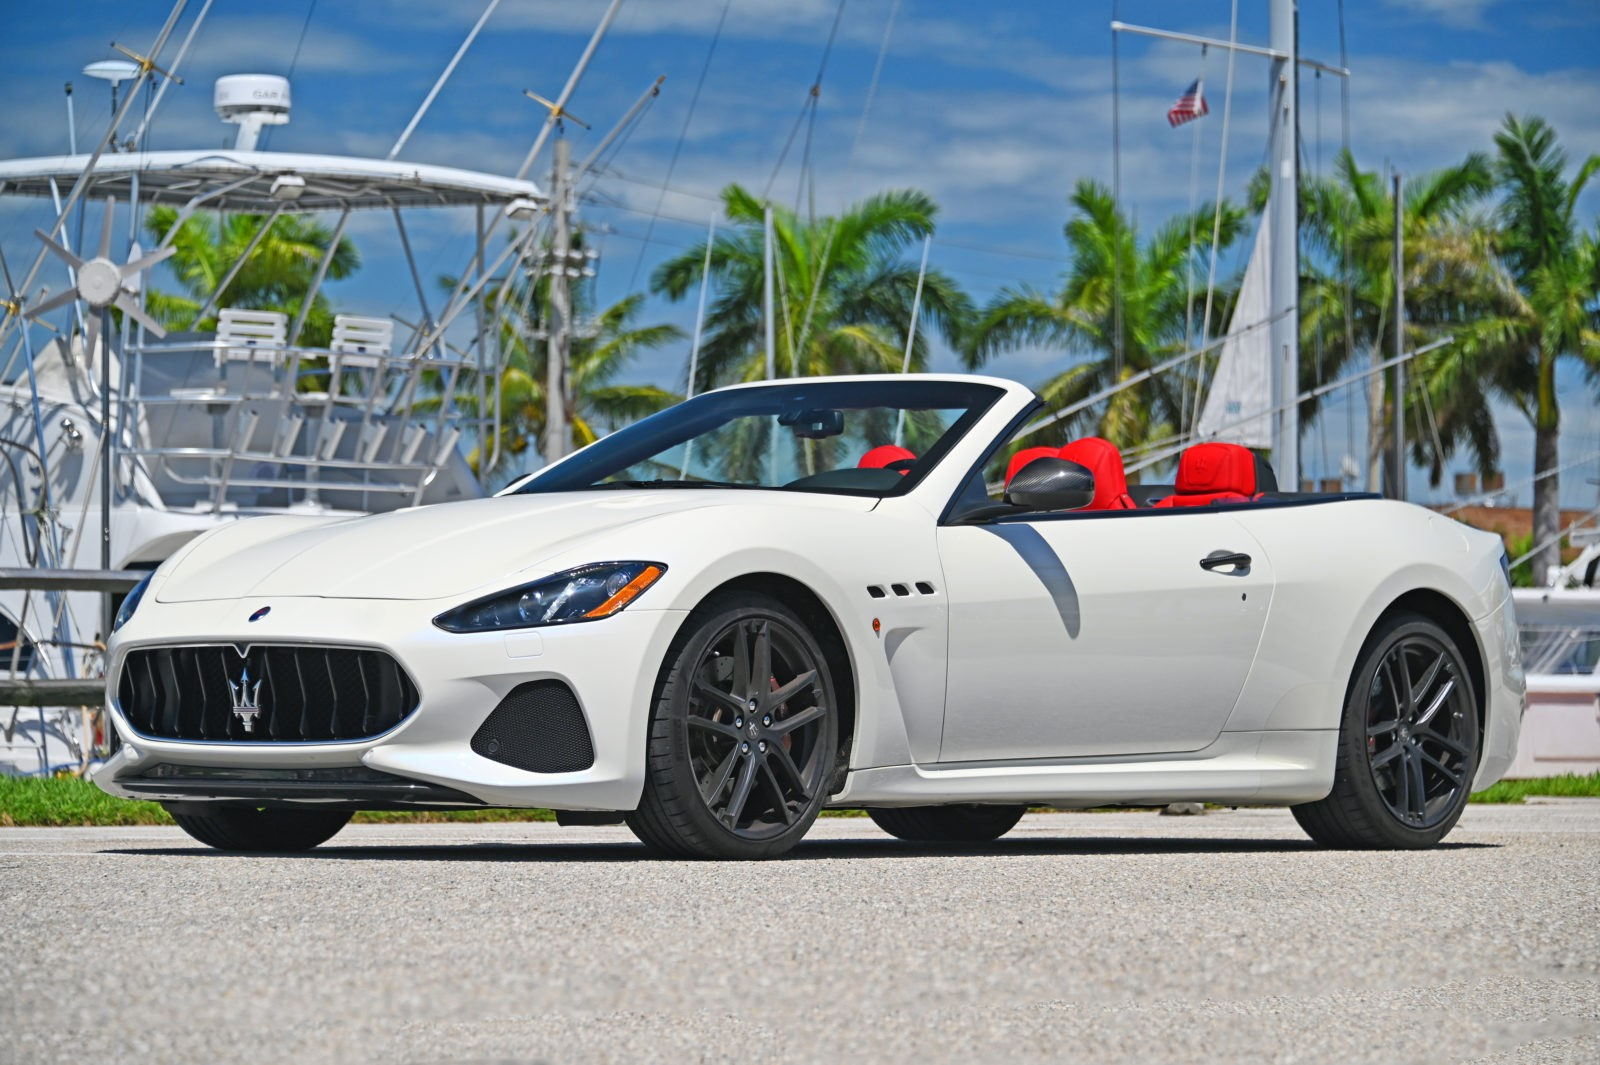 The Maserati GranTurismo MC Review